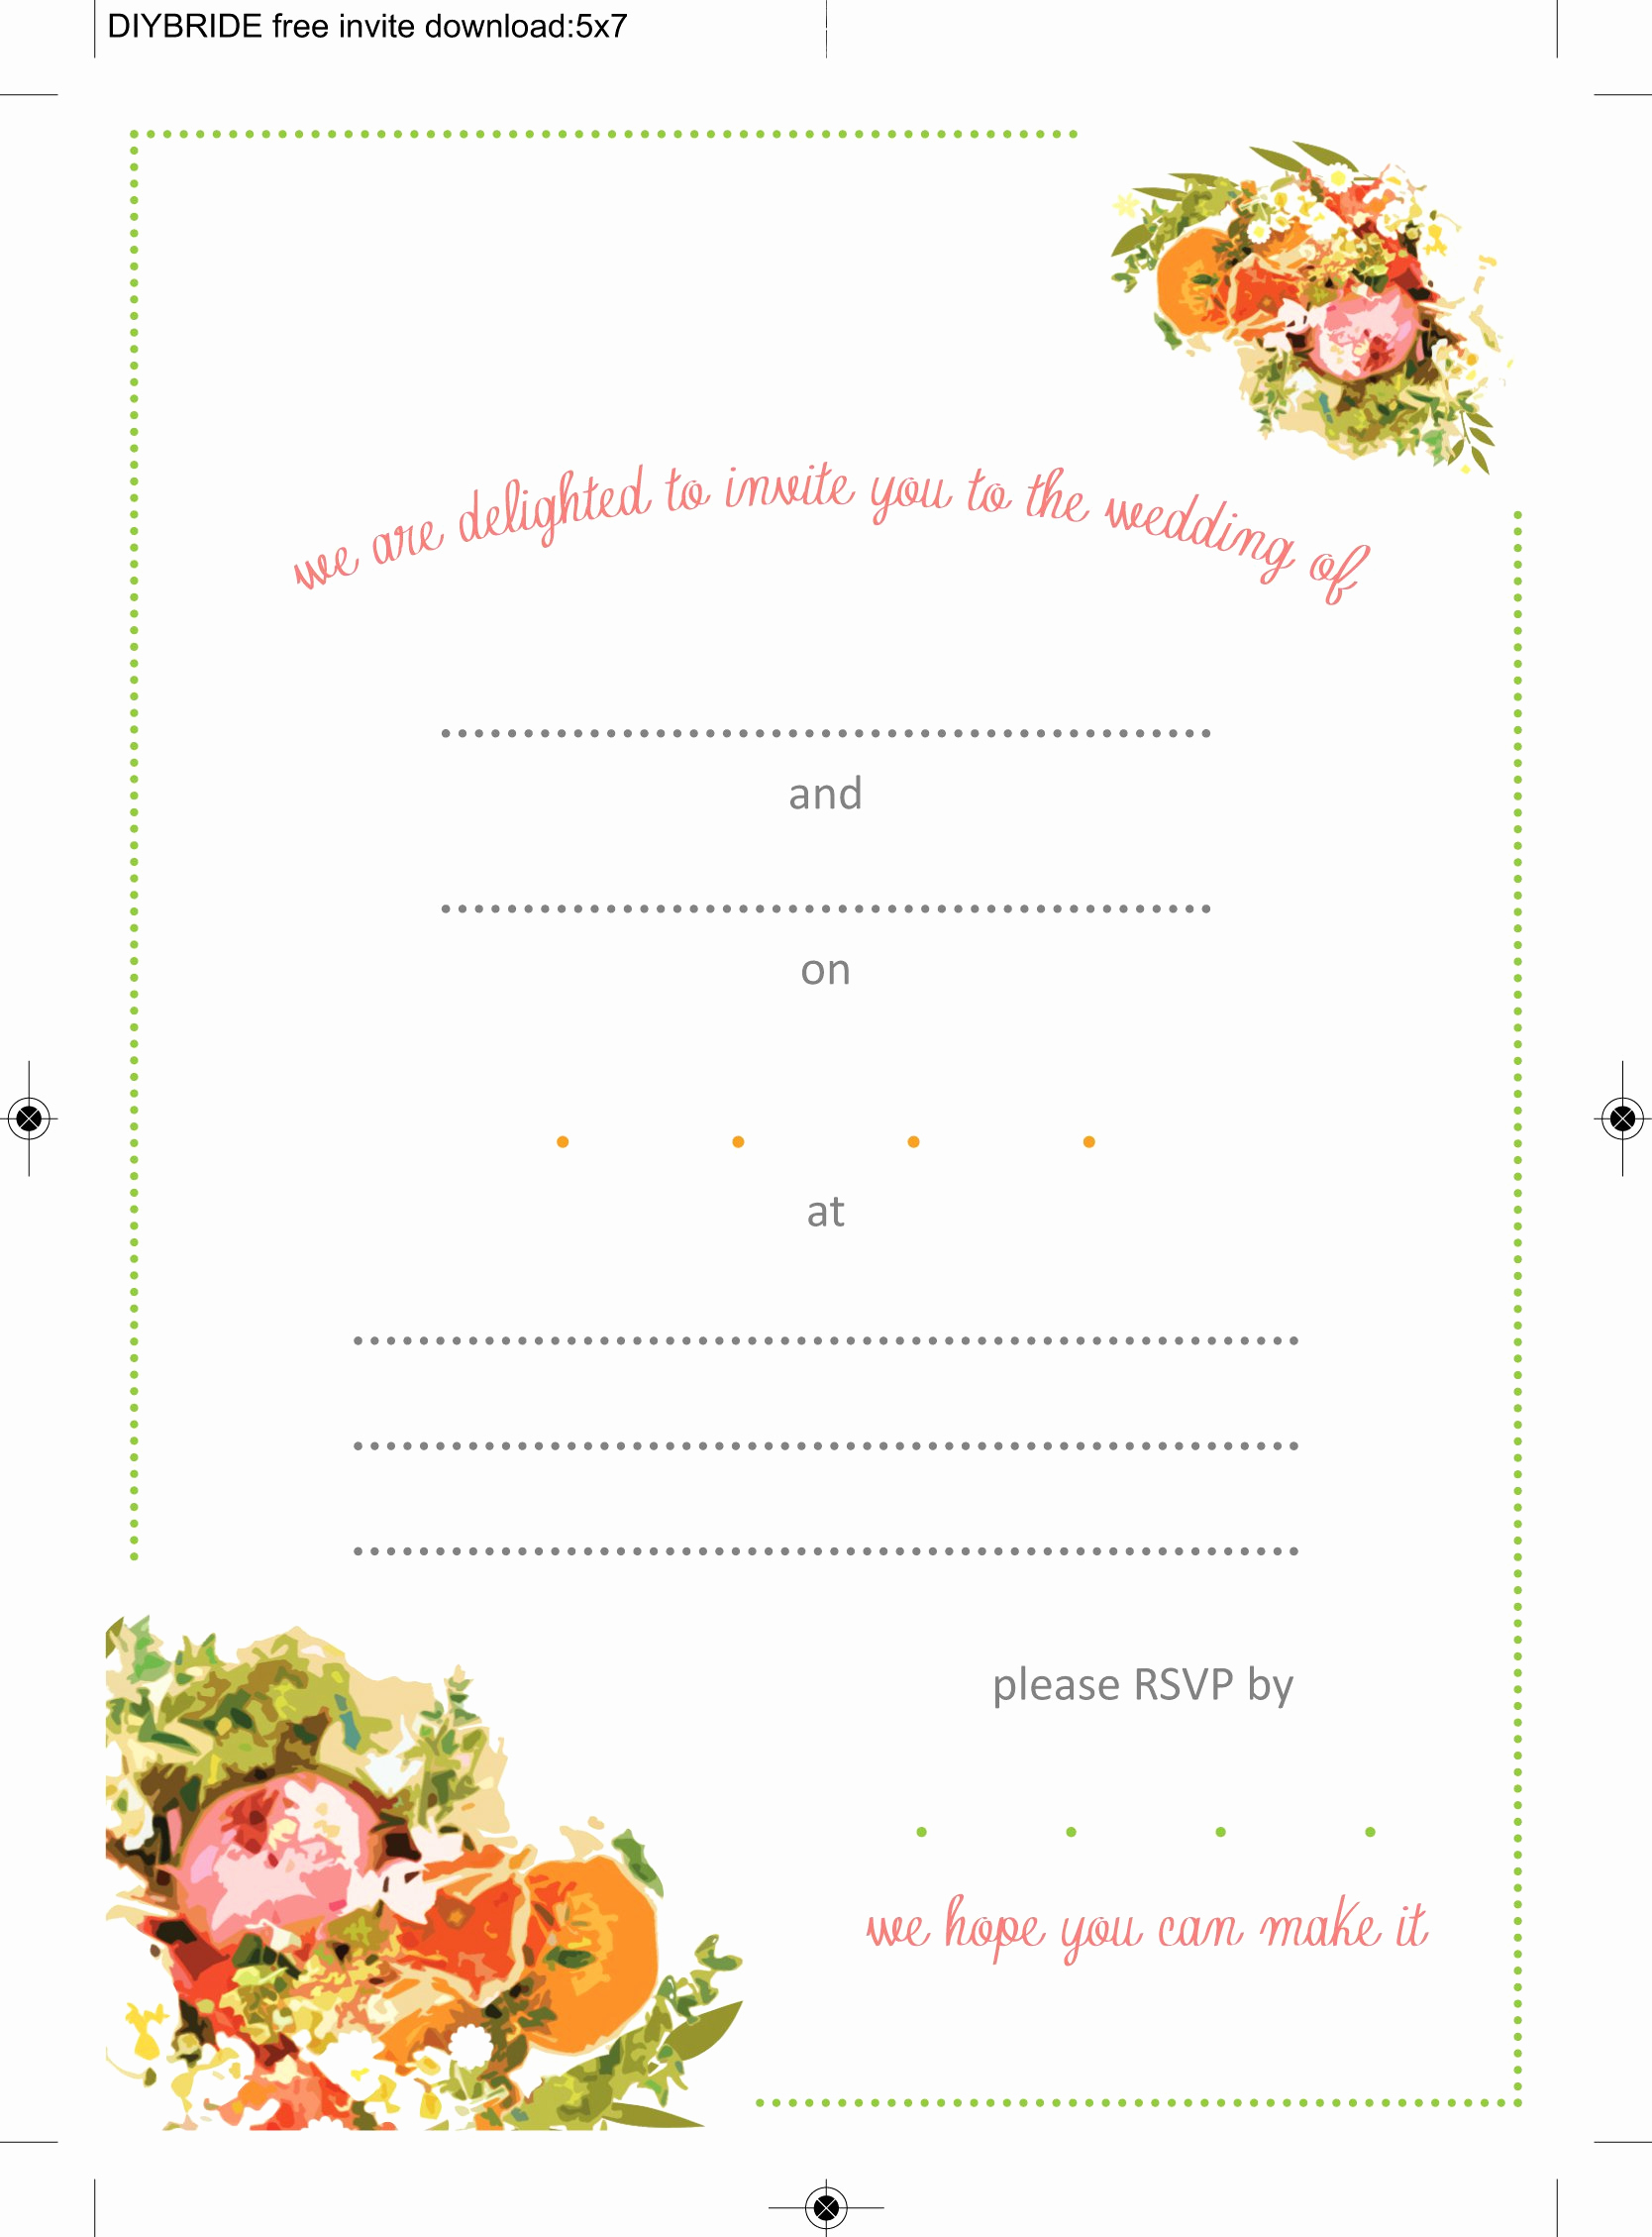 Wedding Invitation Templates Free Download Elegant Wedding Invitation Templates that are Cute and Easy to